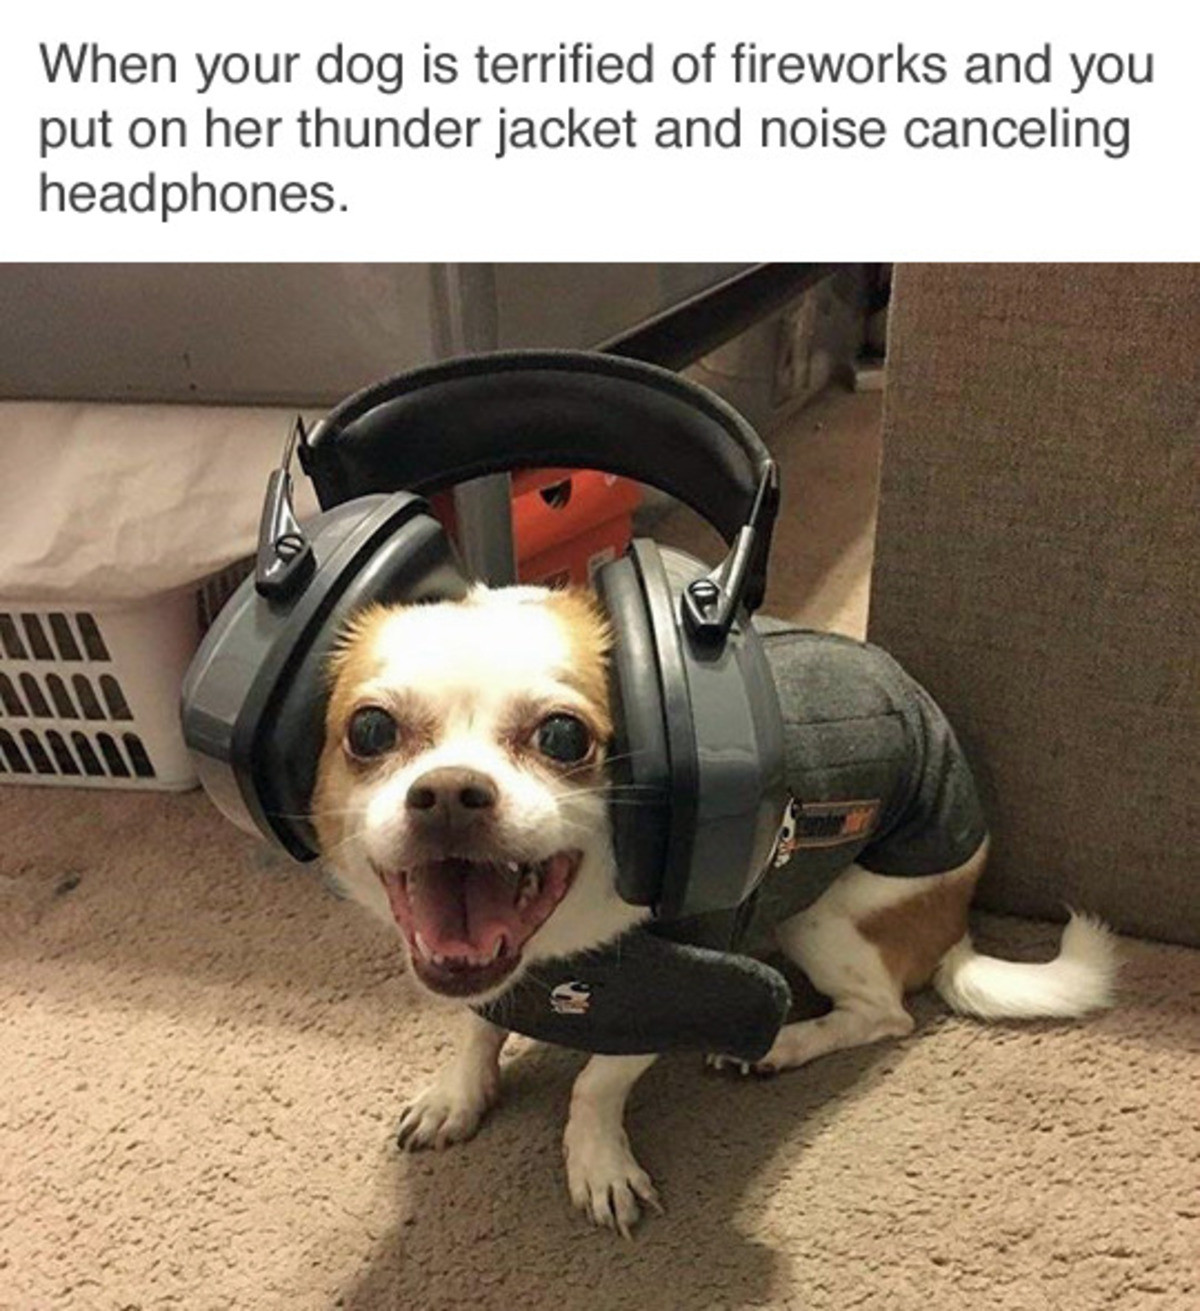 Happy New Years Doggo. . when your 'lilili: is terrified '' fireworks !l, lititz' d Fii, , put on her thunder jacket noise canceling headphones.. He looks like a god damn army soldier.